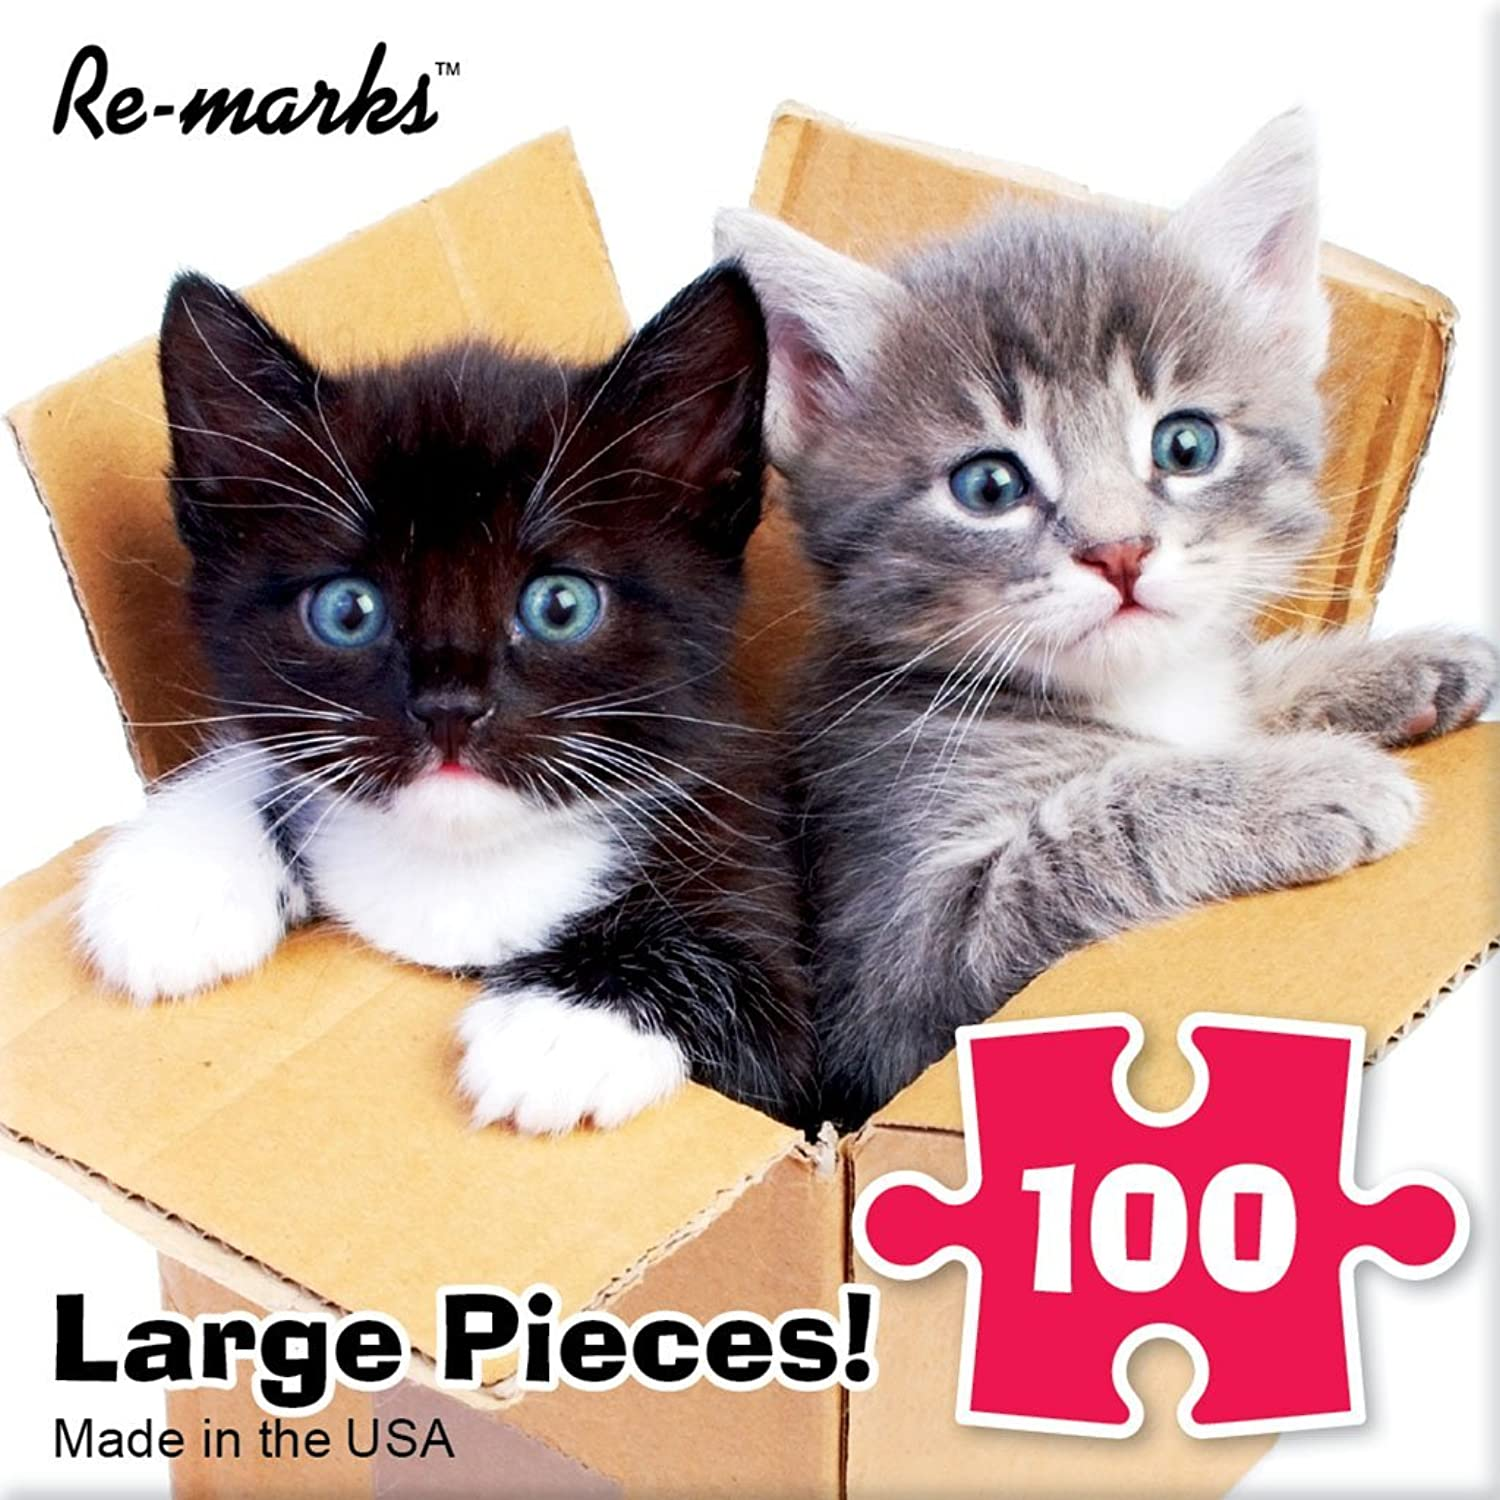 Jigsaw Puzzle 100 Pieces 10 inches x 10 inches Kittens in a Box